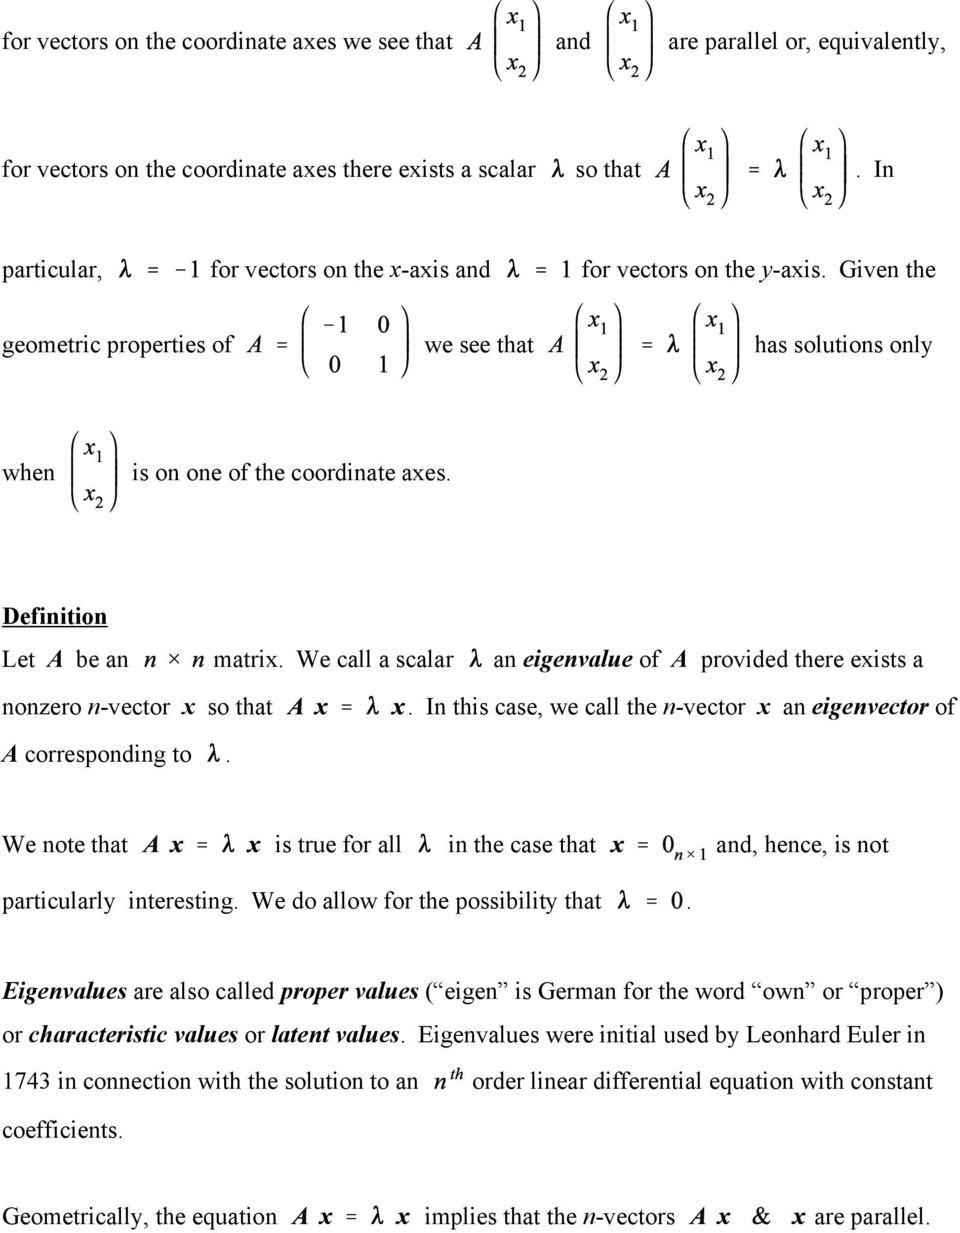 there exists a nonzero n-vector x so that In this case, we call the n-vector x an eigenvector of A corresponding to We note that is true for all in the case that and, hence, is not particularly